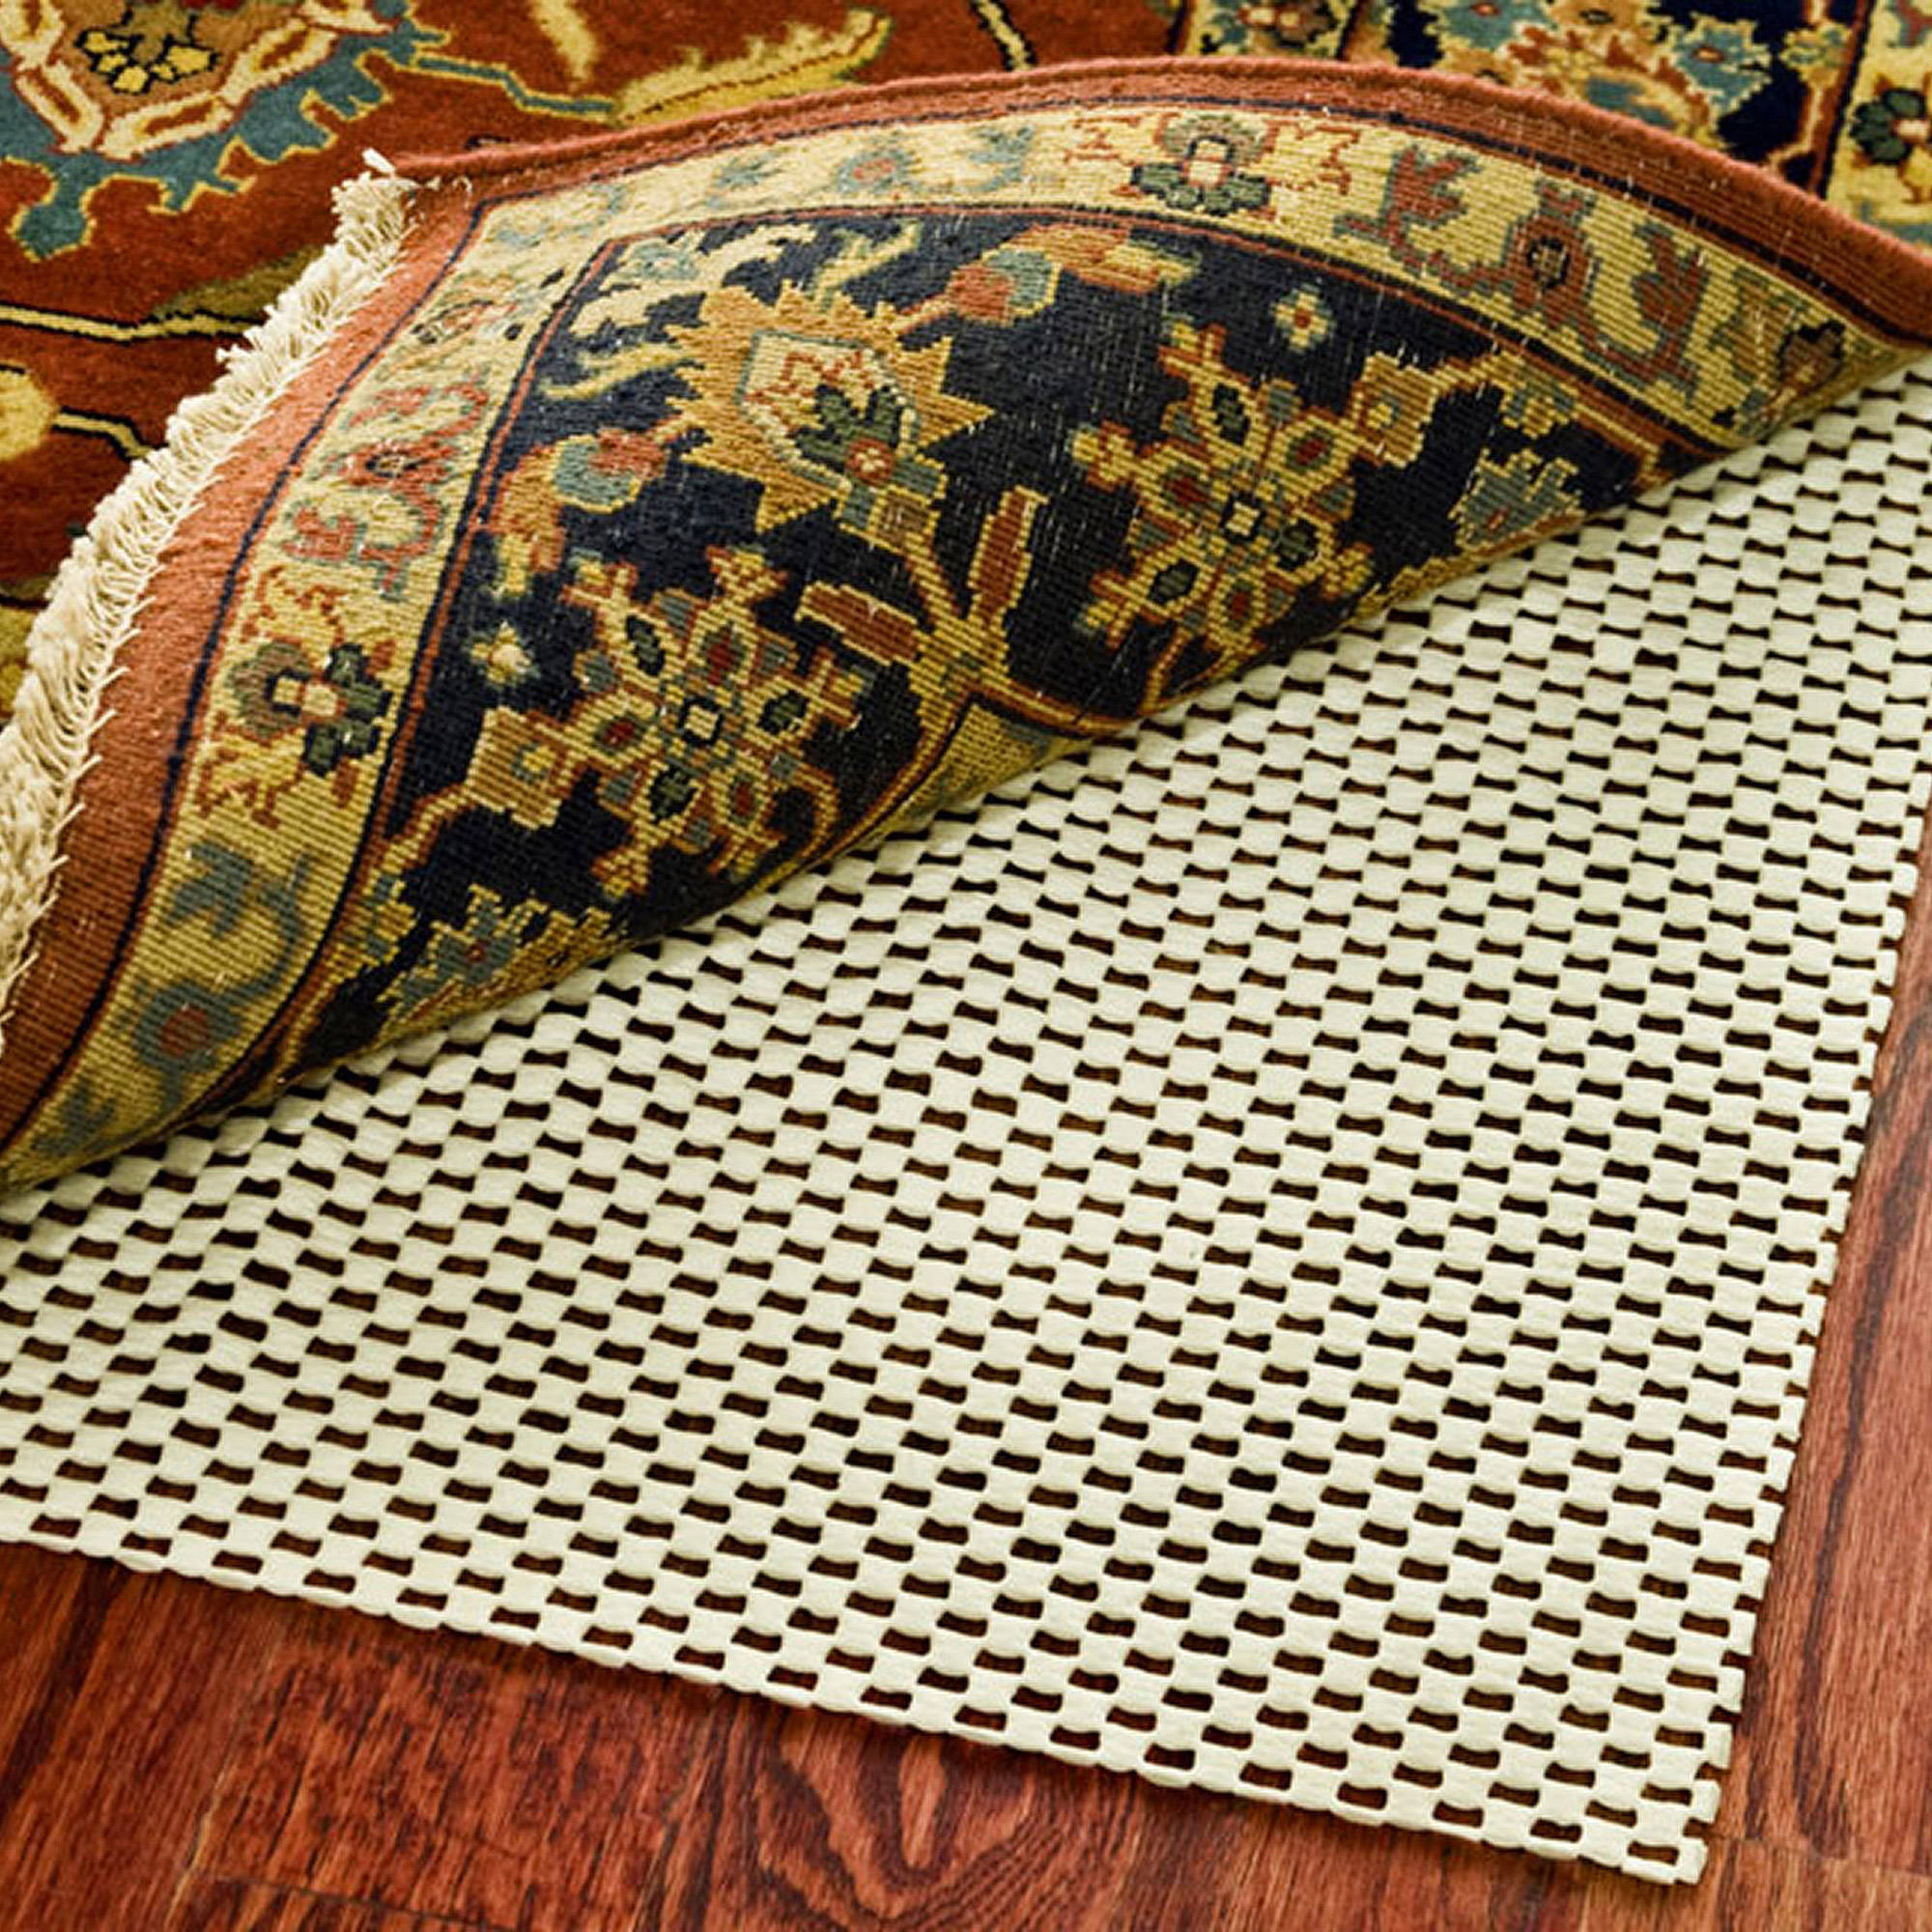 Safavieh Special Area Rug Pad for Hard Floor by Safavieh